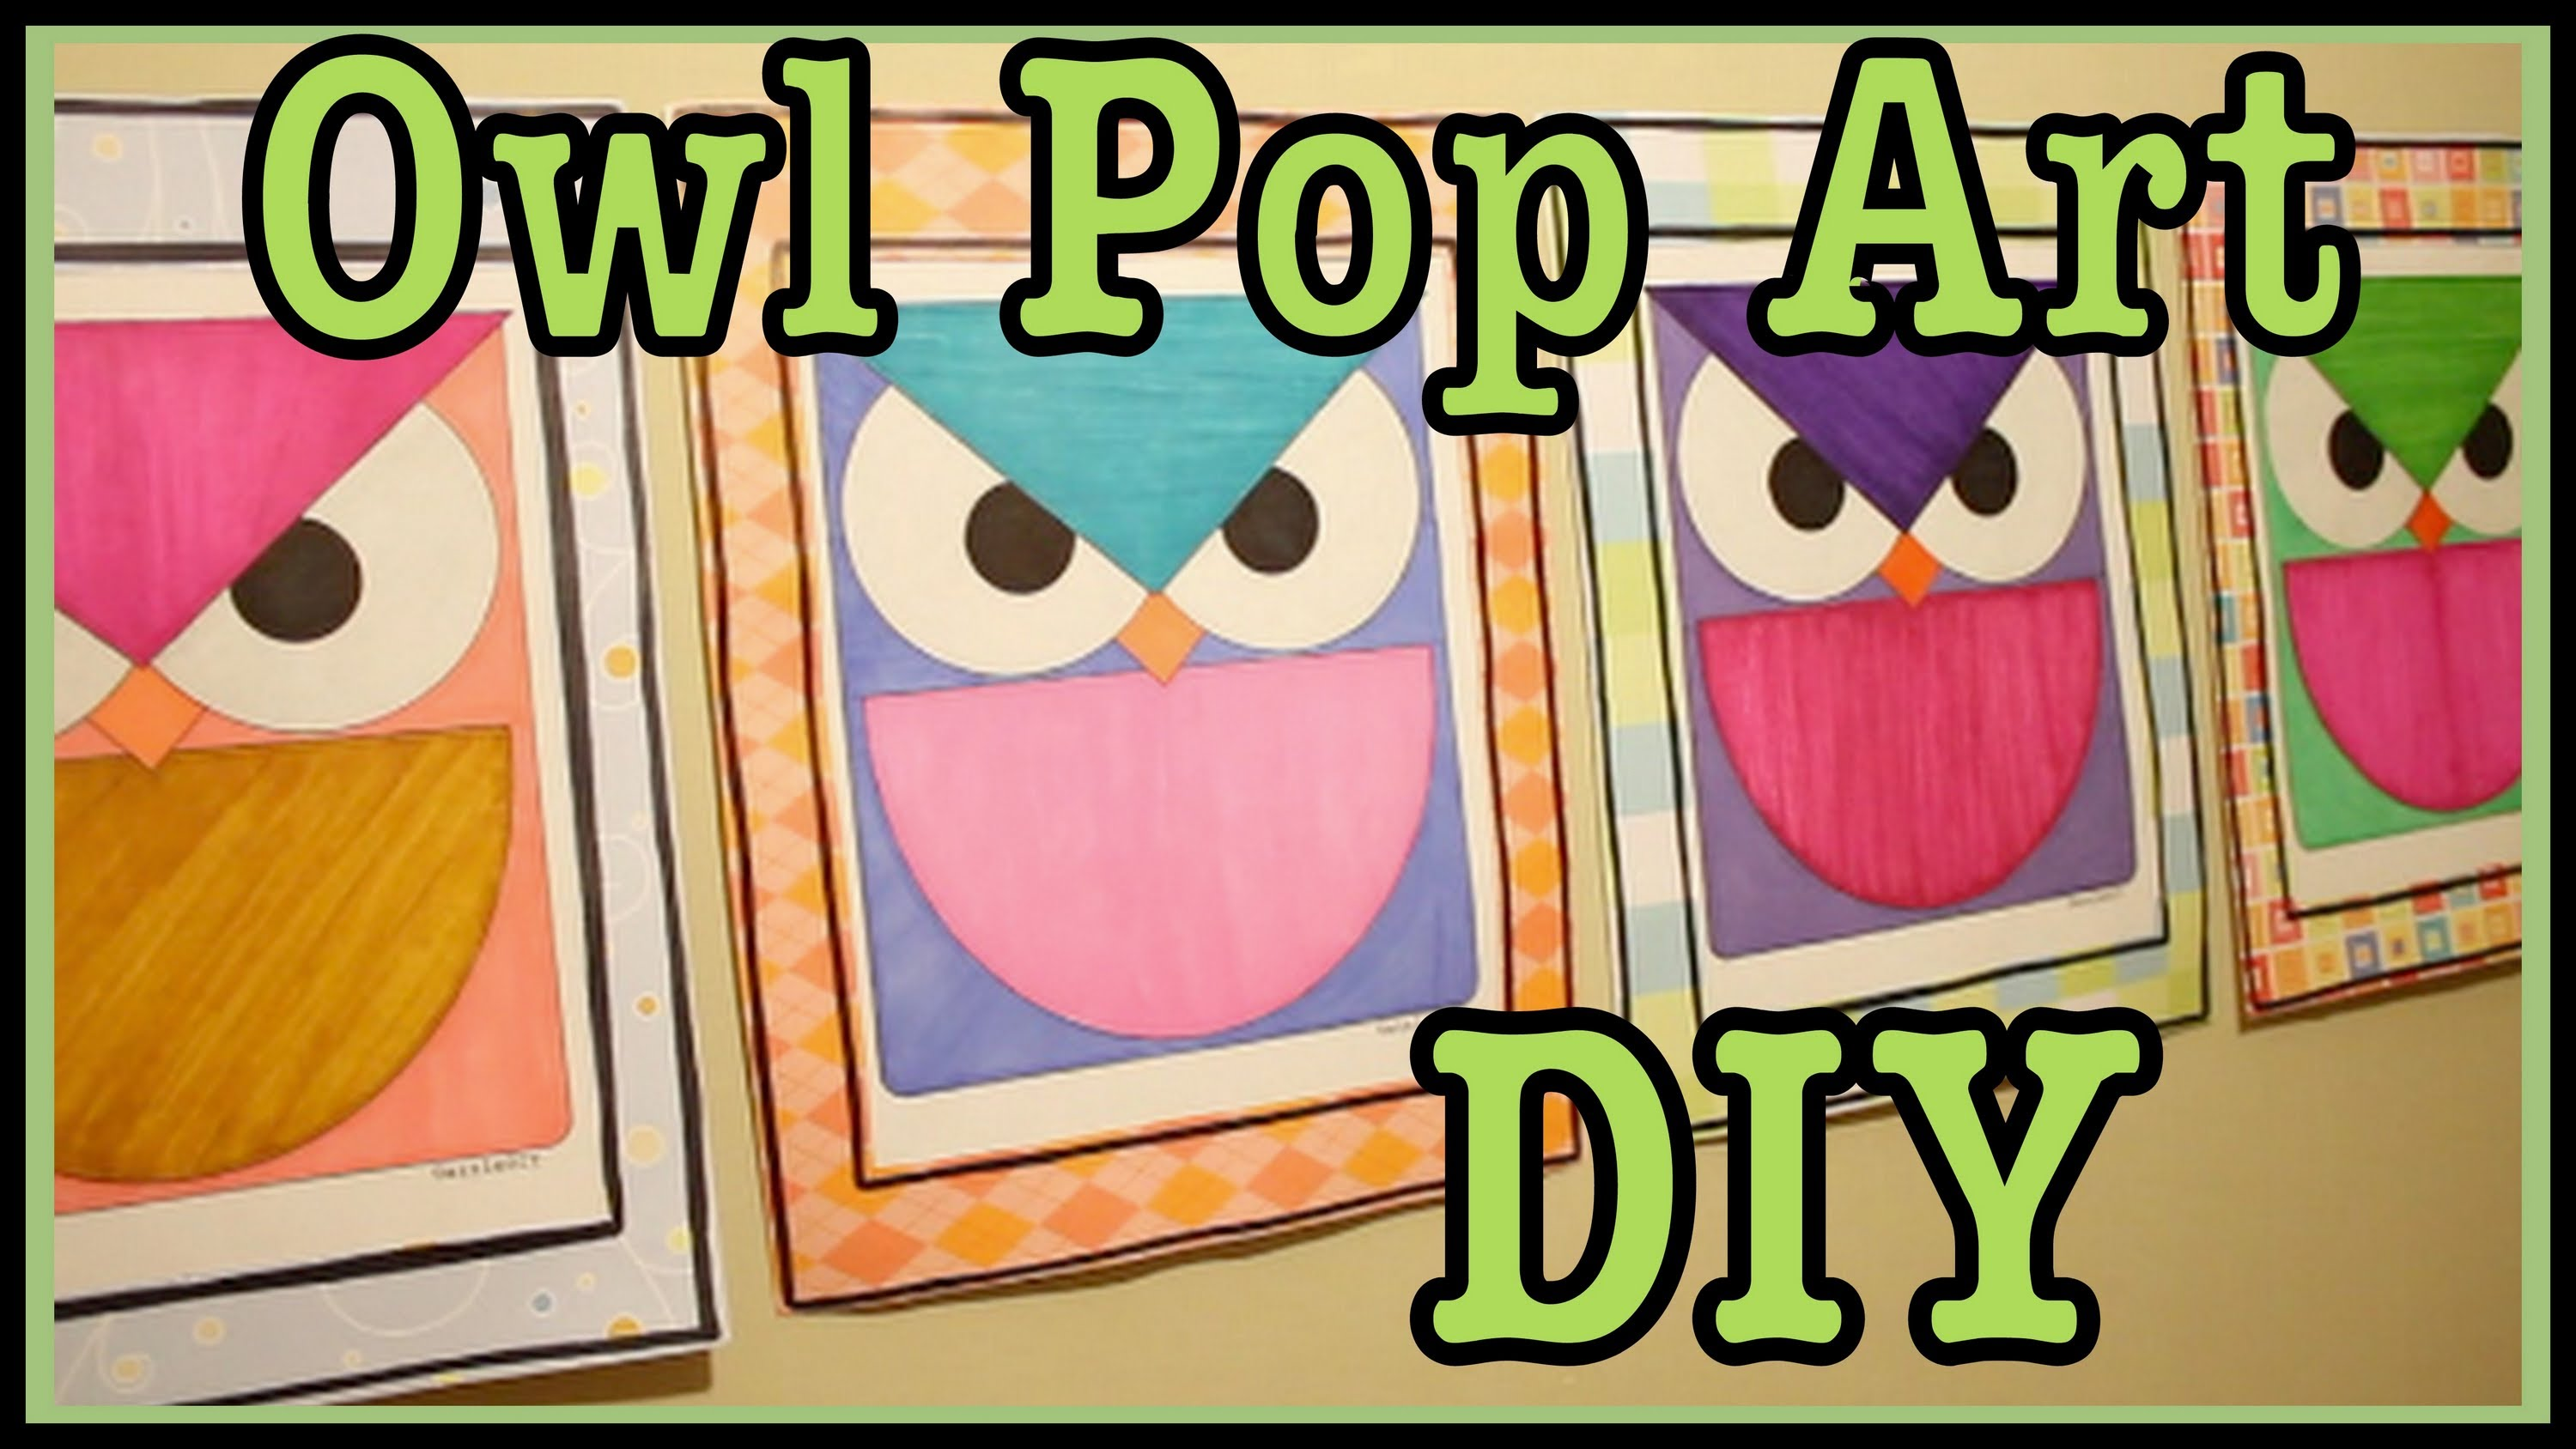 Owl pop art diy